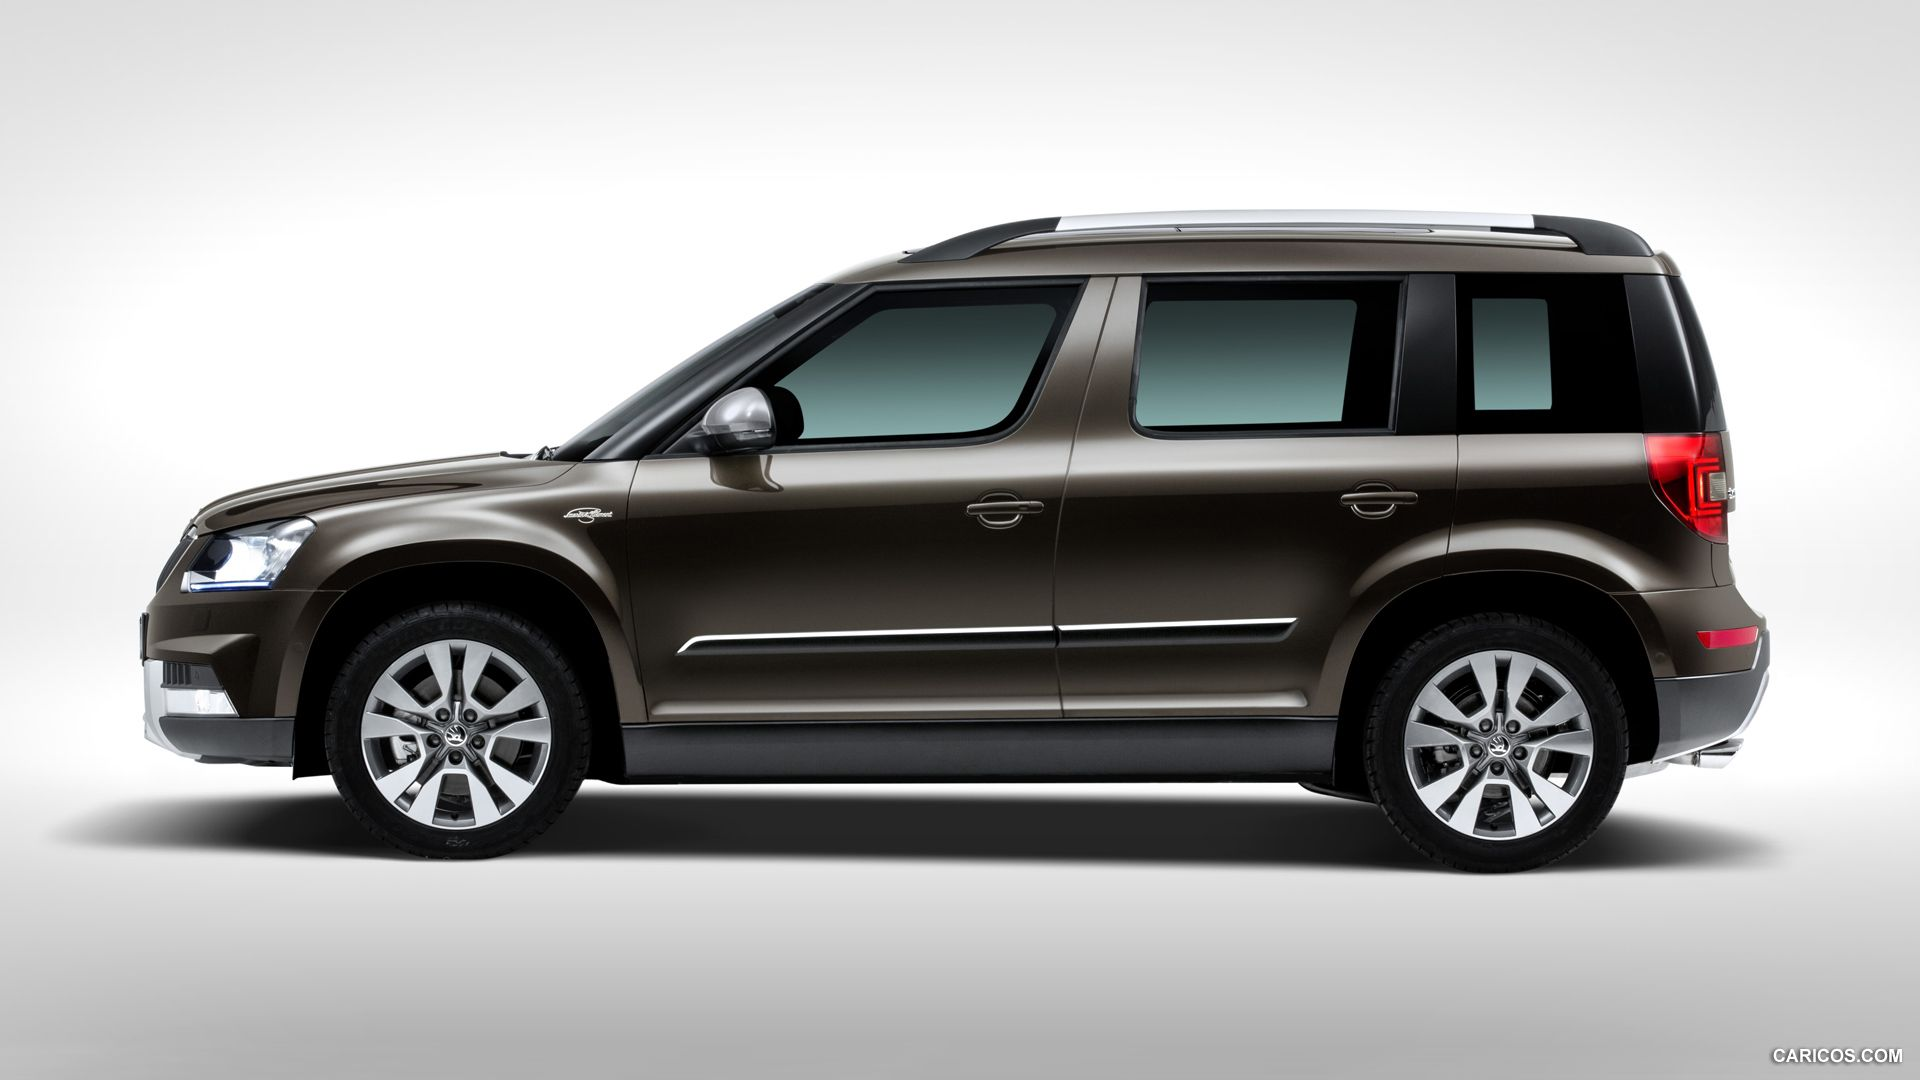 Skoda yeti 2017 review release date new automotive trends skoda - 2014 Skoda Yeti Wallpaper